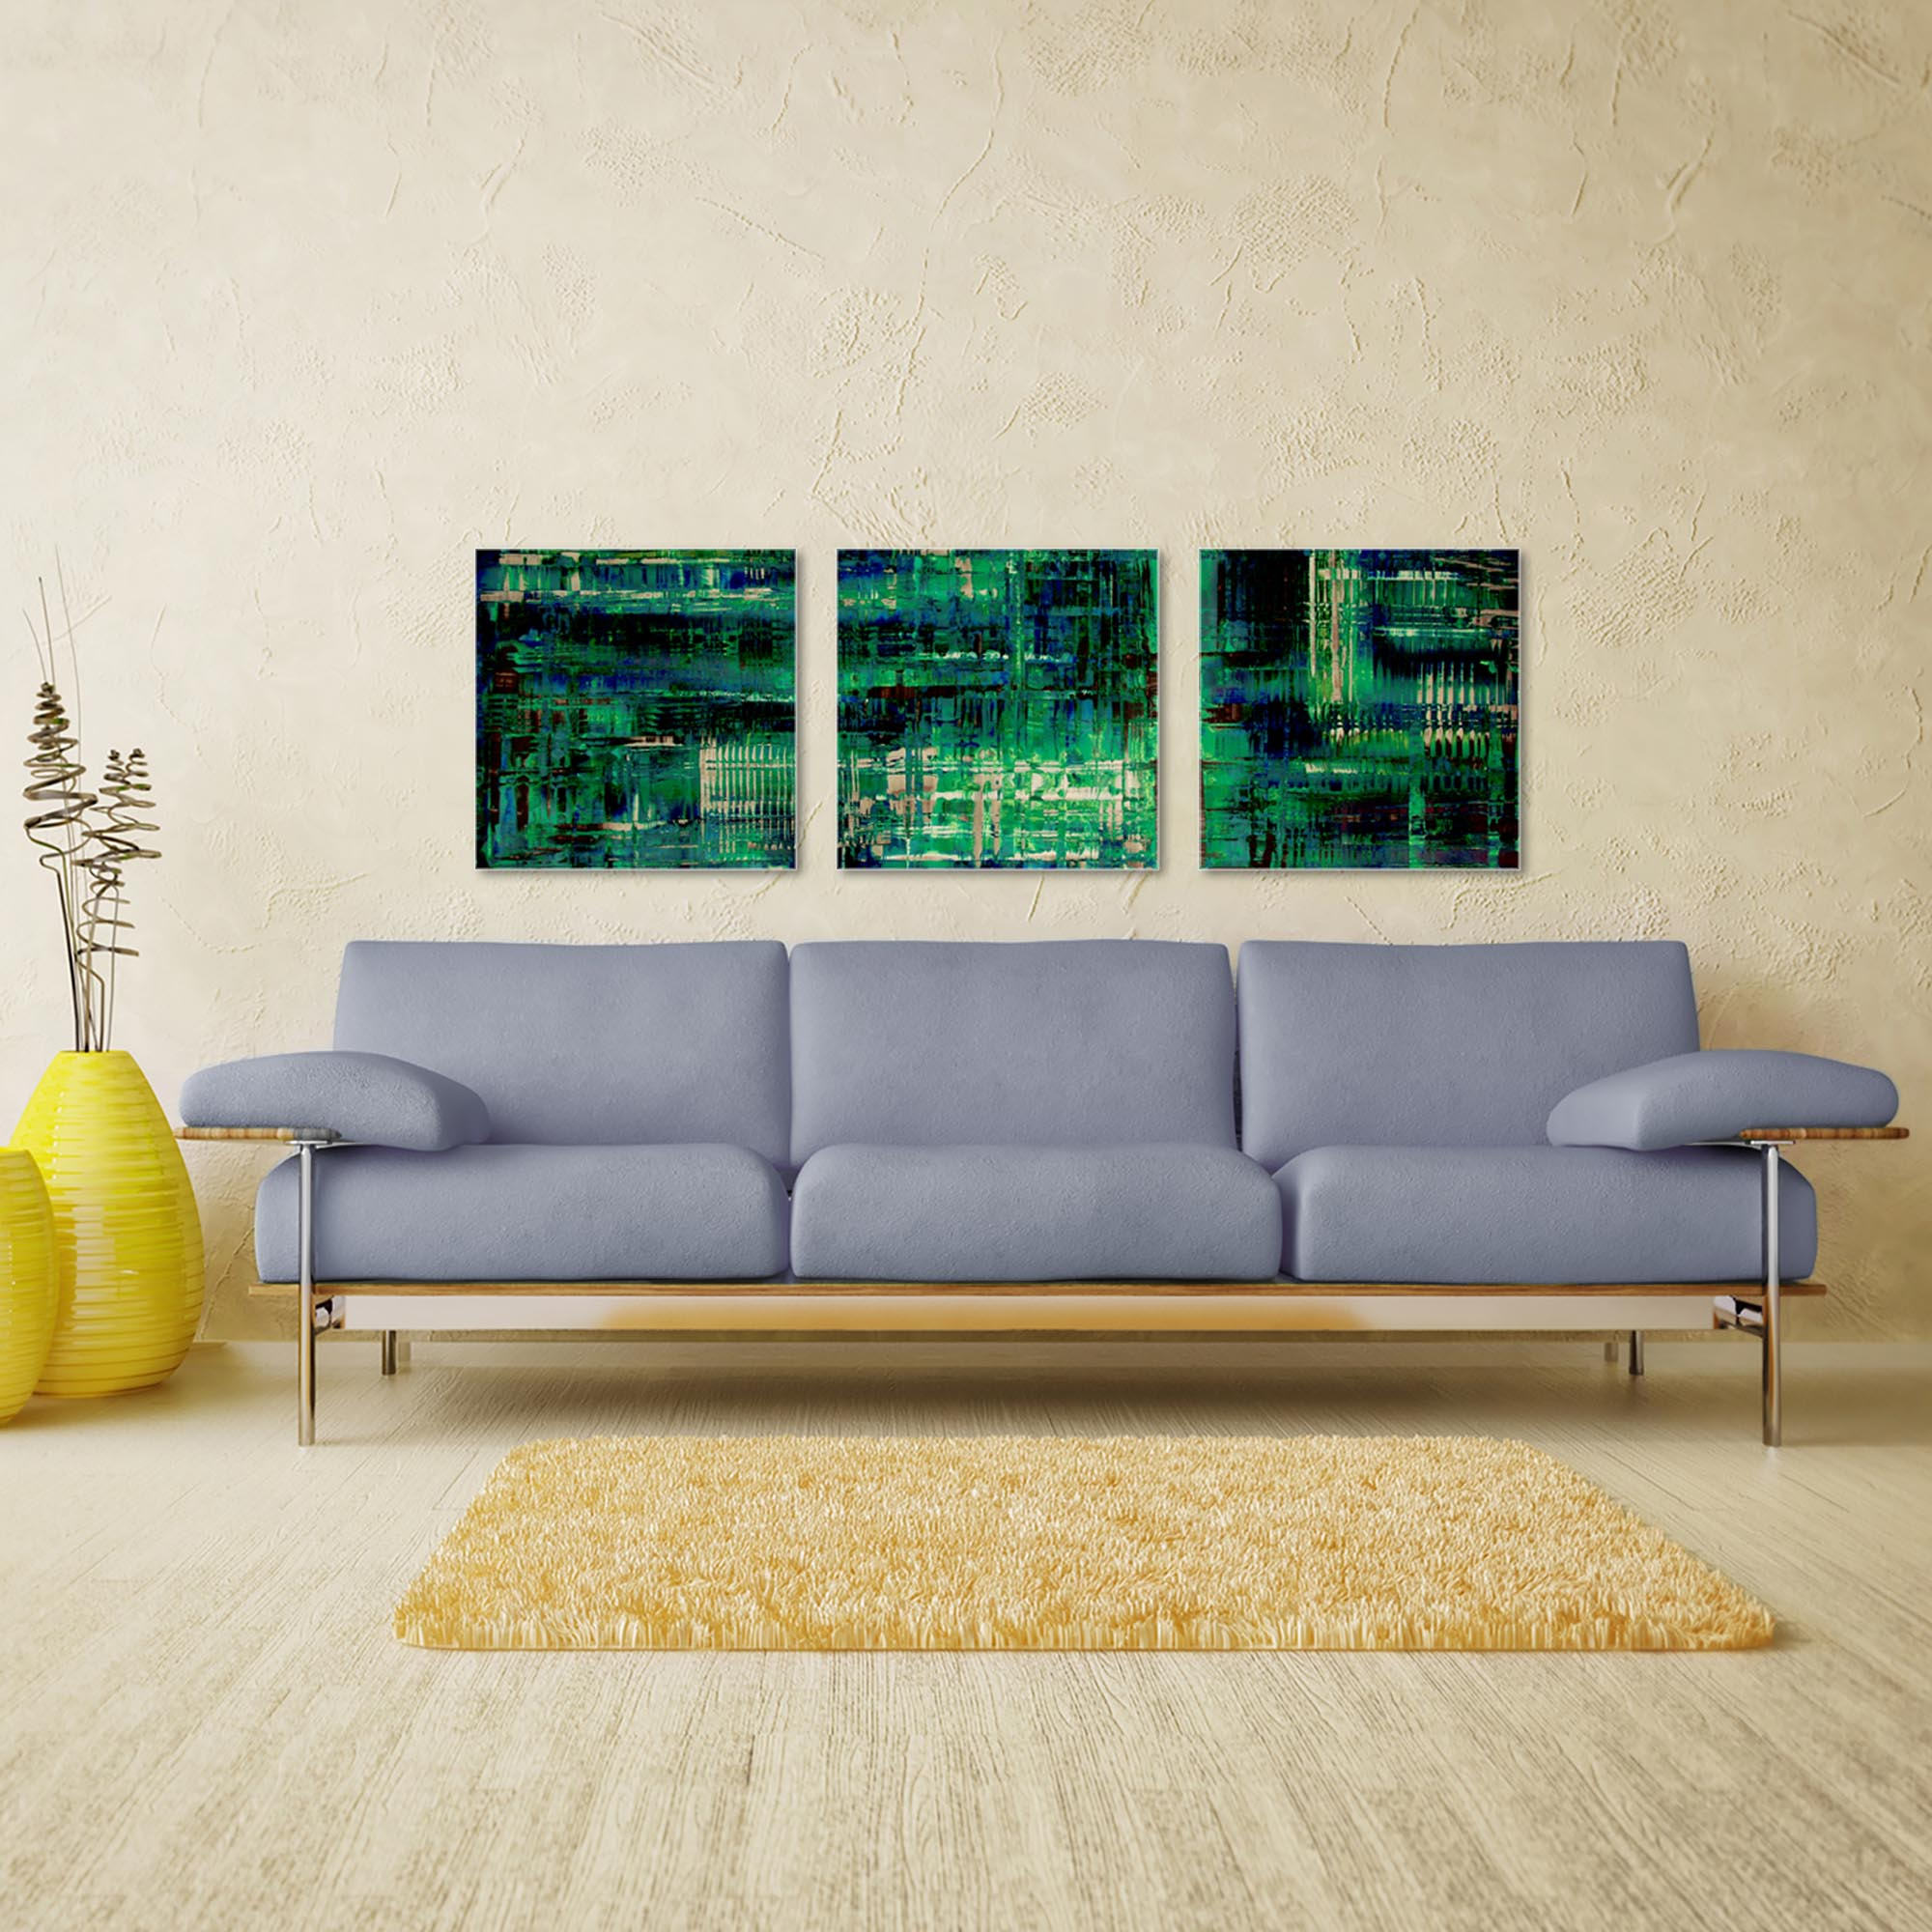 Aporia Blue Triptych Large 70x22in. Metal or Acrylic Contemporary Decor - Image 3